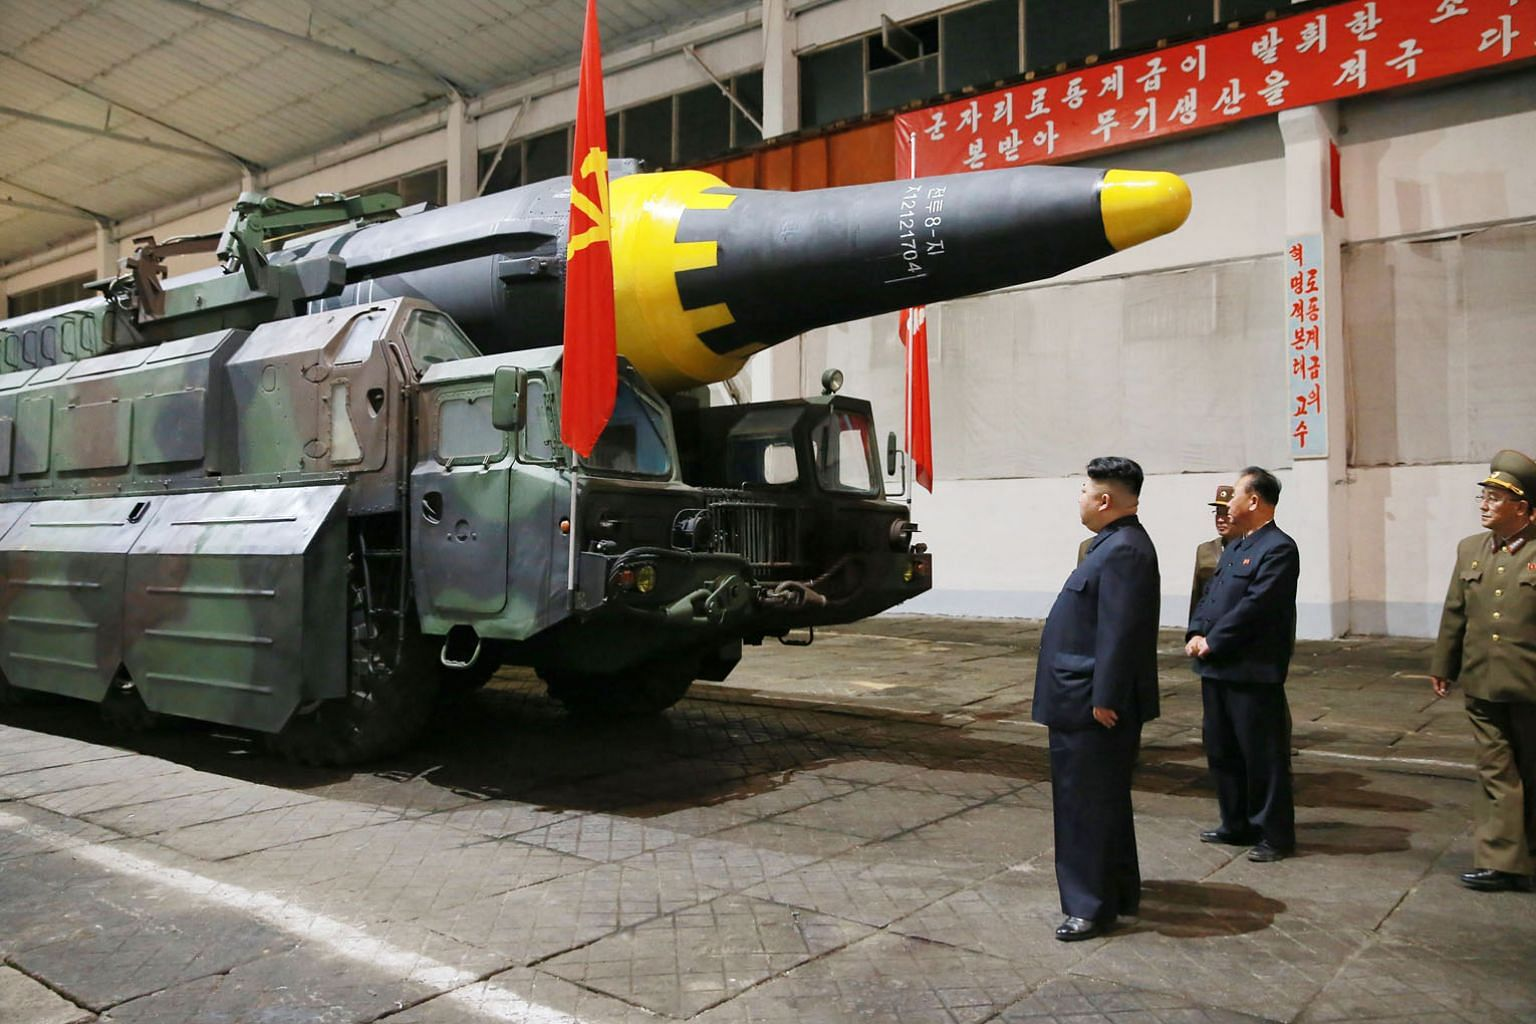 North Korean leader Kim Jong Un checking out a missile after Pyongyang test-fired a new ballistic missile, which it says is capable of carrying a big nuclear warhead, earlier this month.